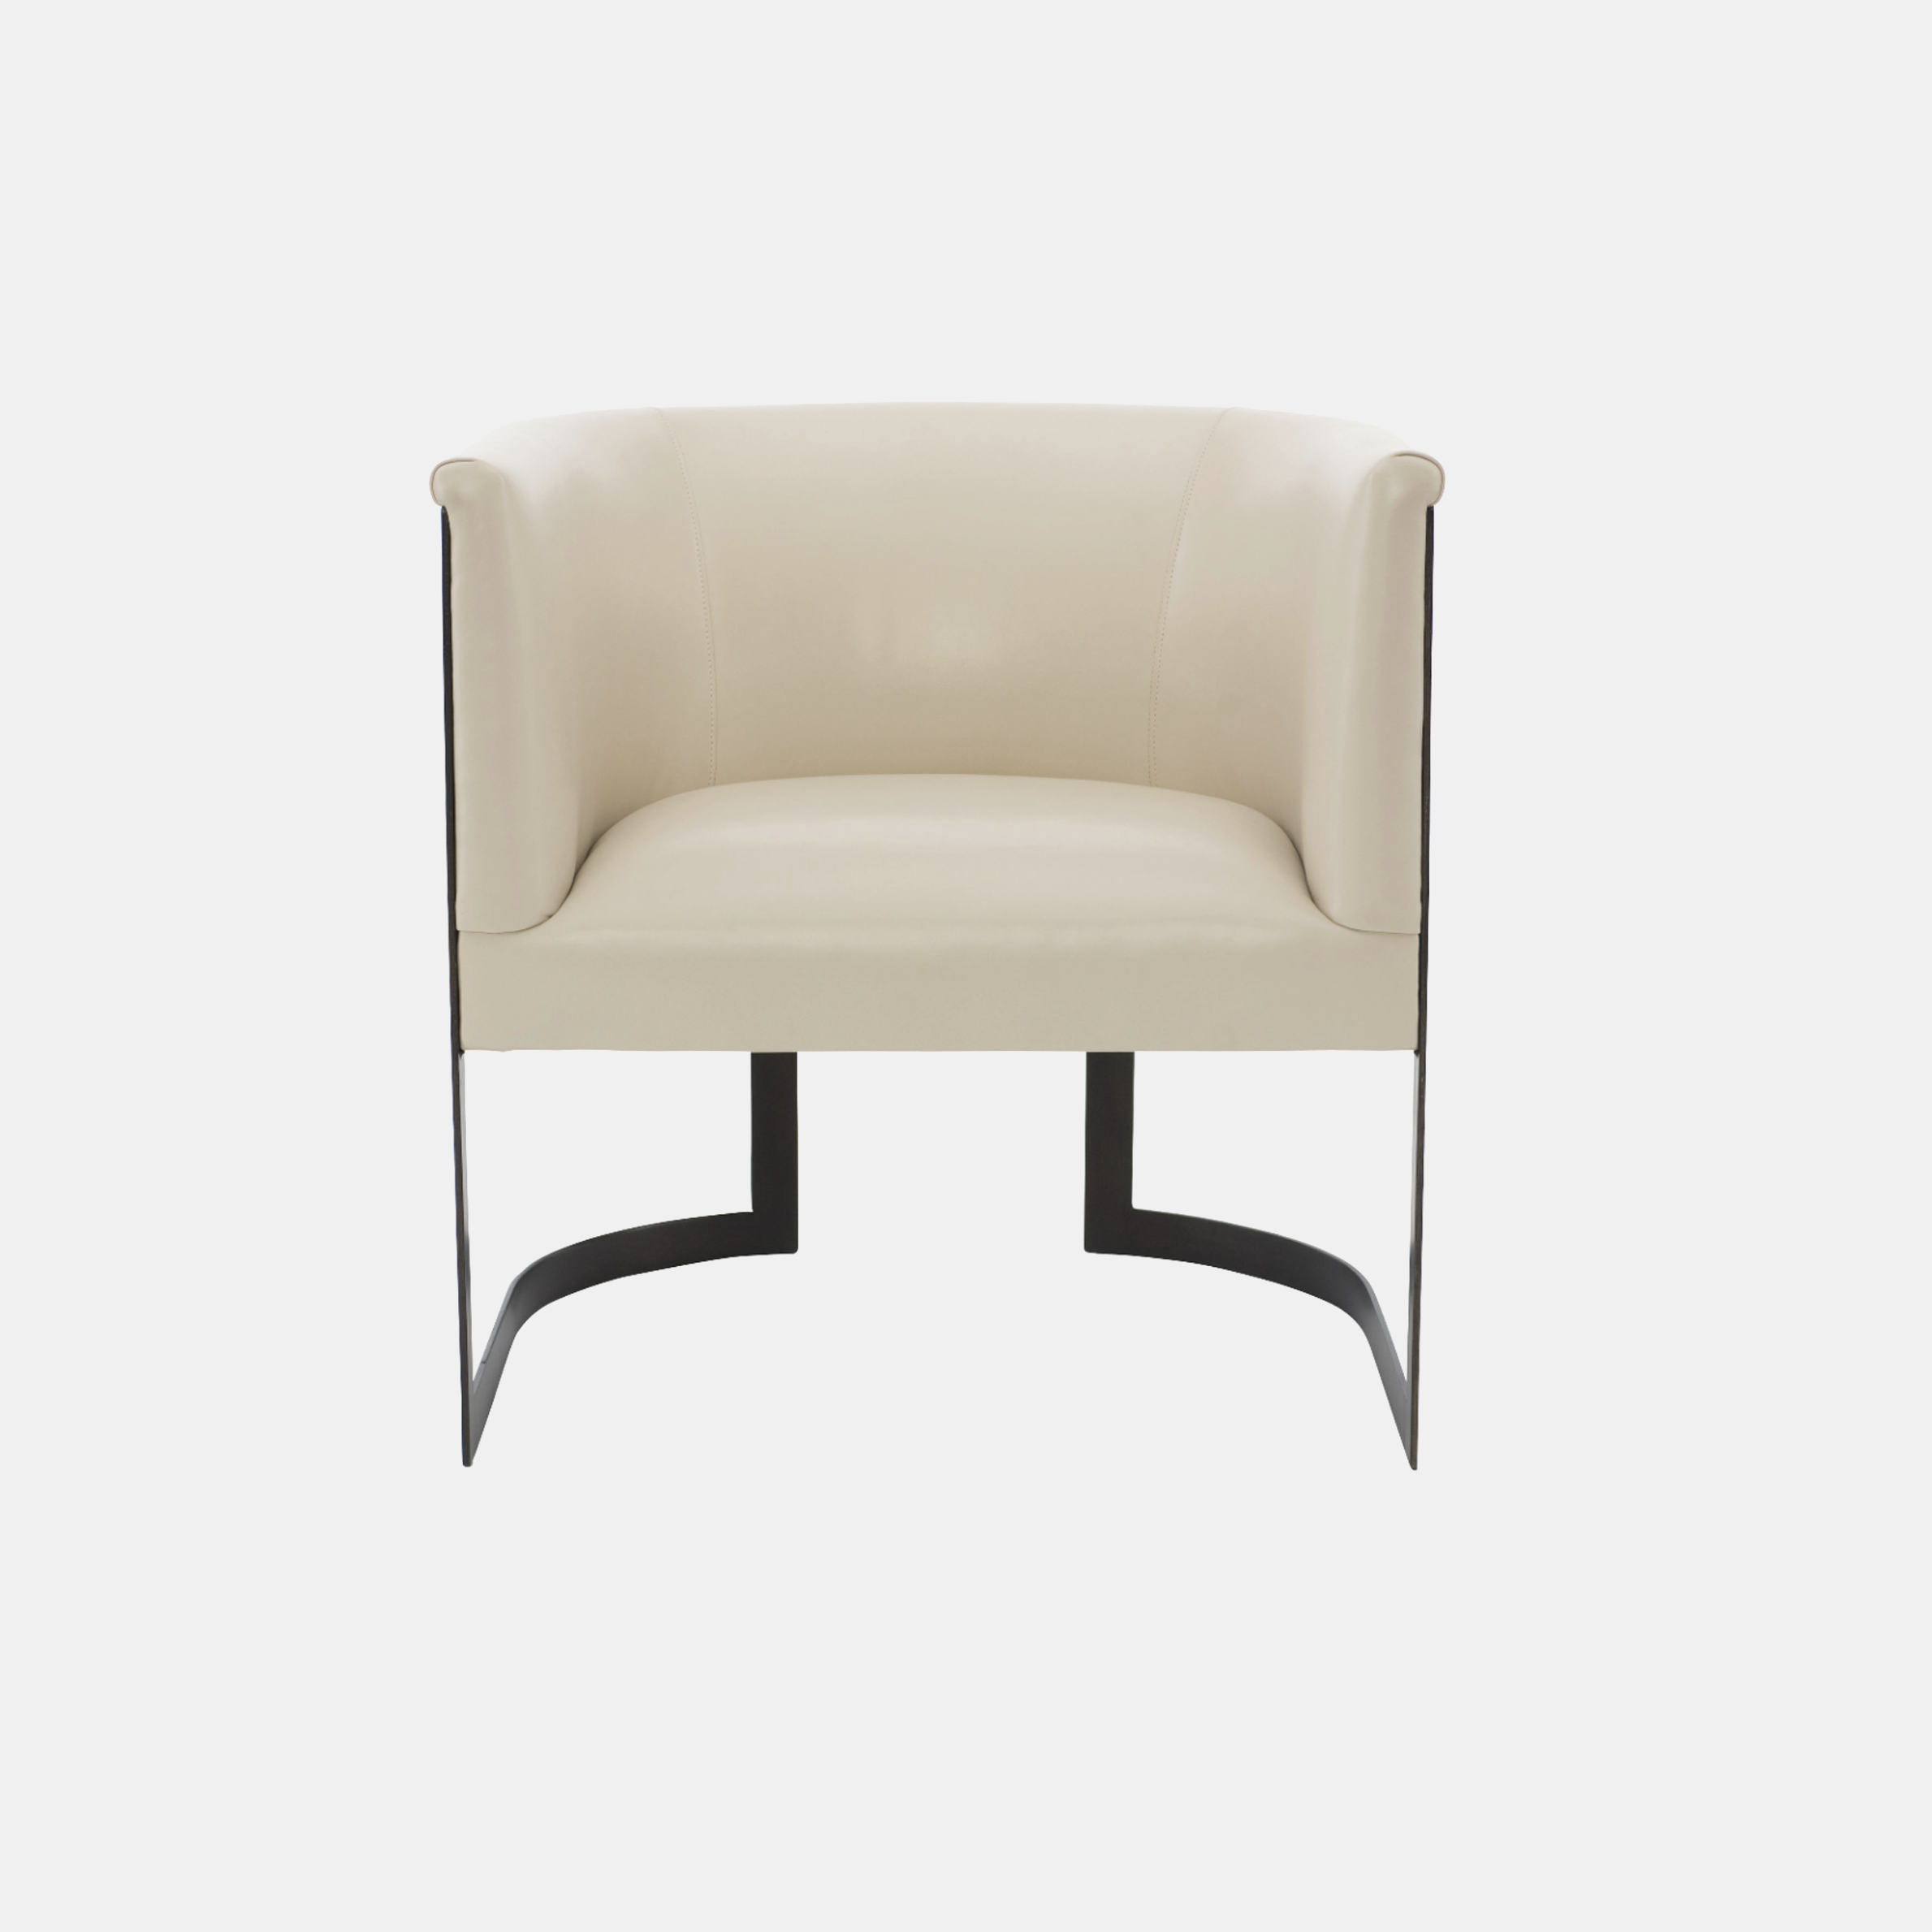 "Zola Chair  29""w x 29.5""d x 30.5""h Available in leathers, fabrics, or COM. SKU8811BHT"